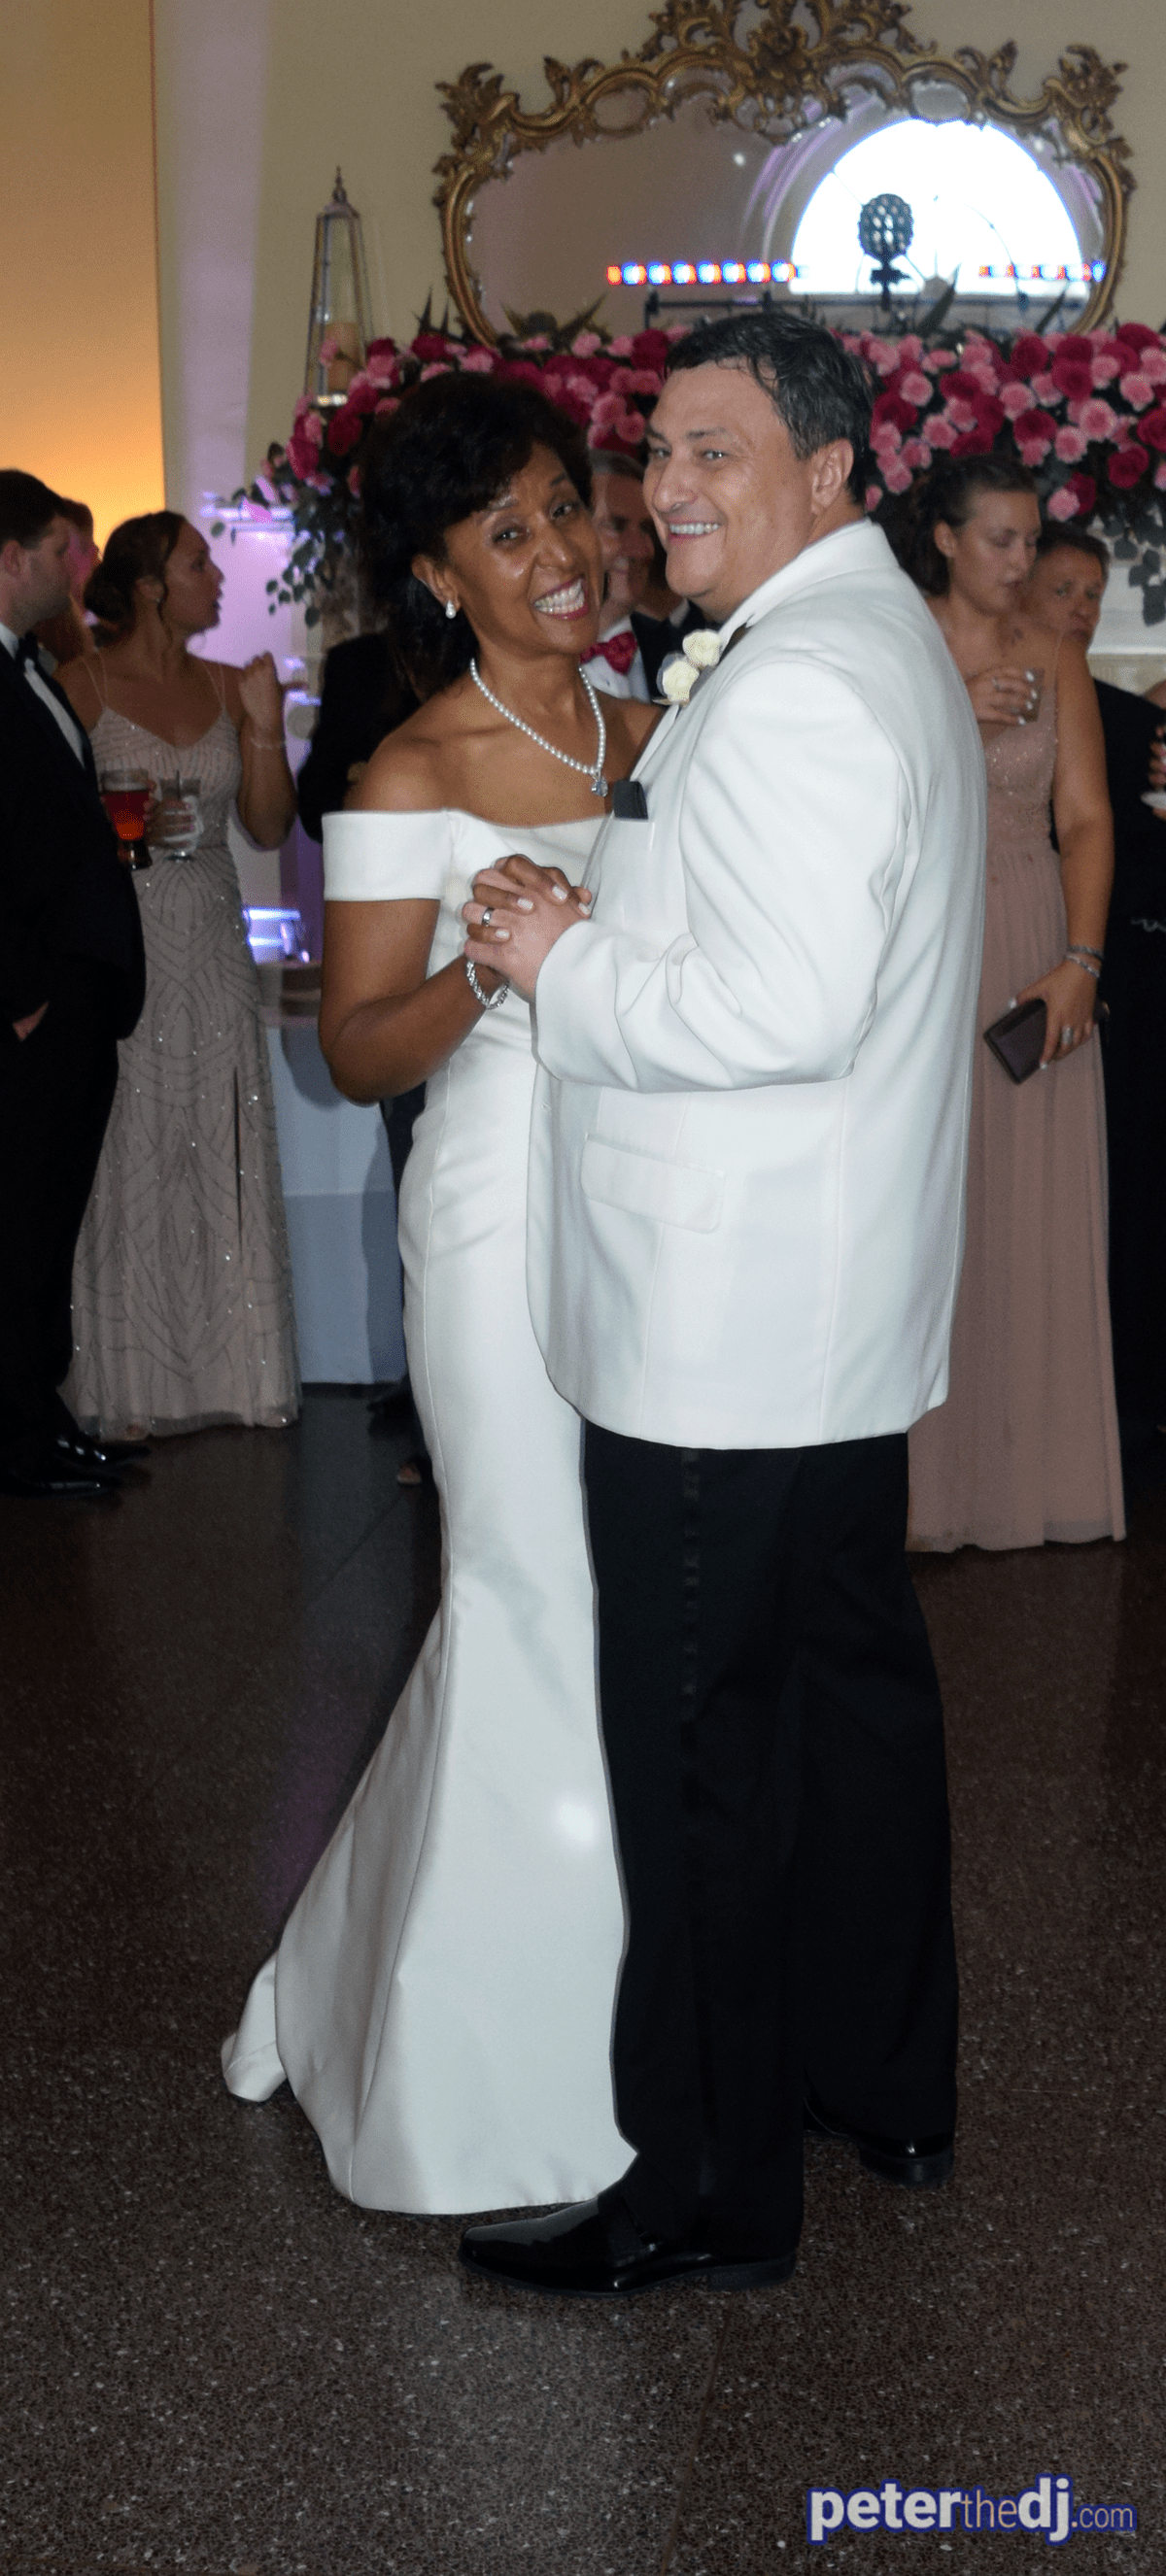 Wedding: Cydney and Jeffry at Onondaga Golf and Country Club, Fayetteville, 7/6/19 5